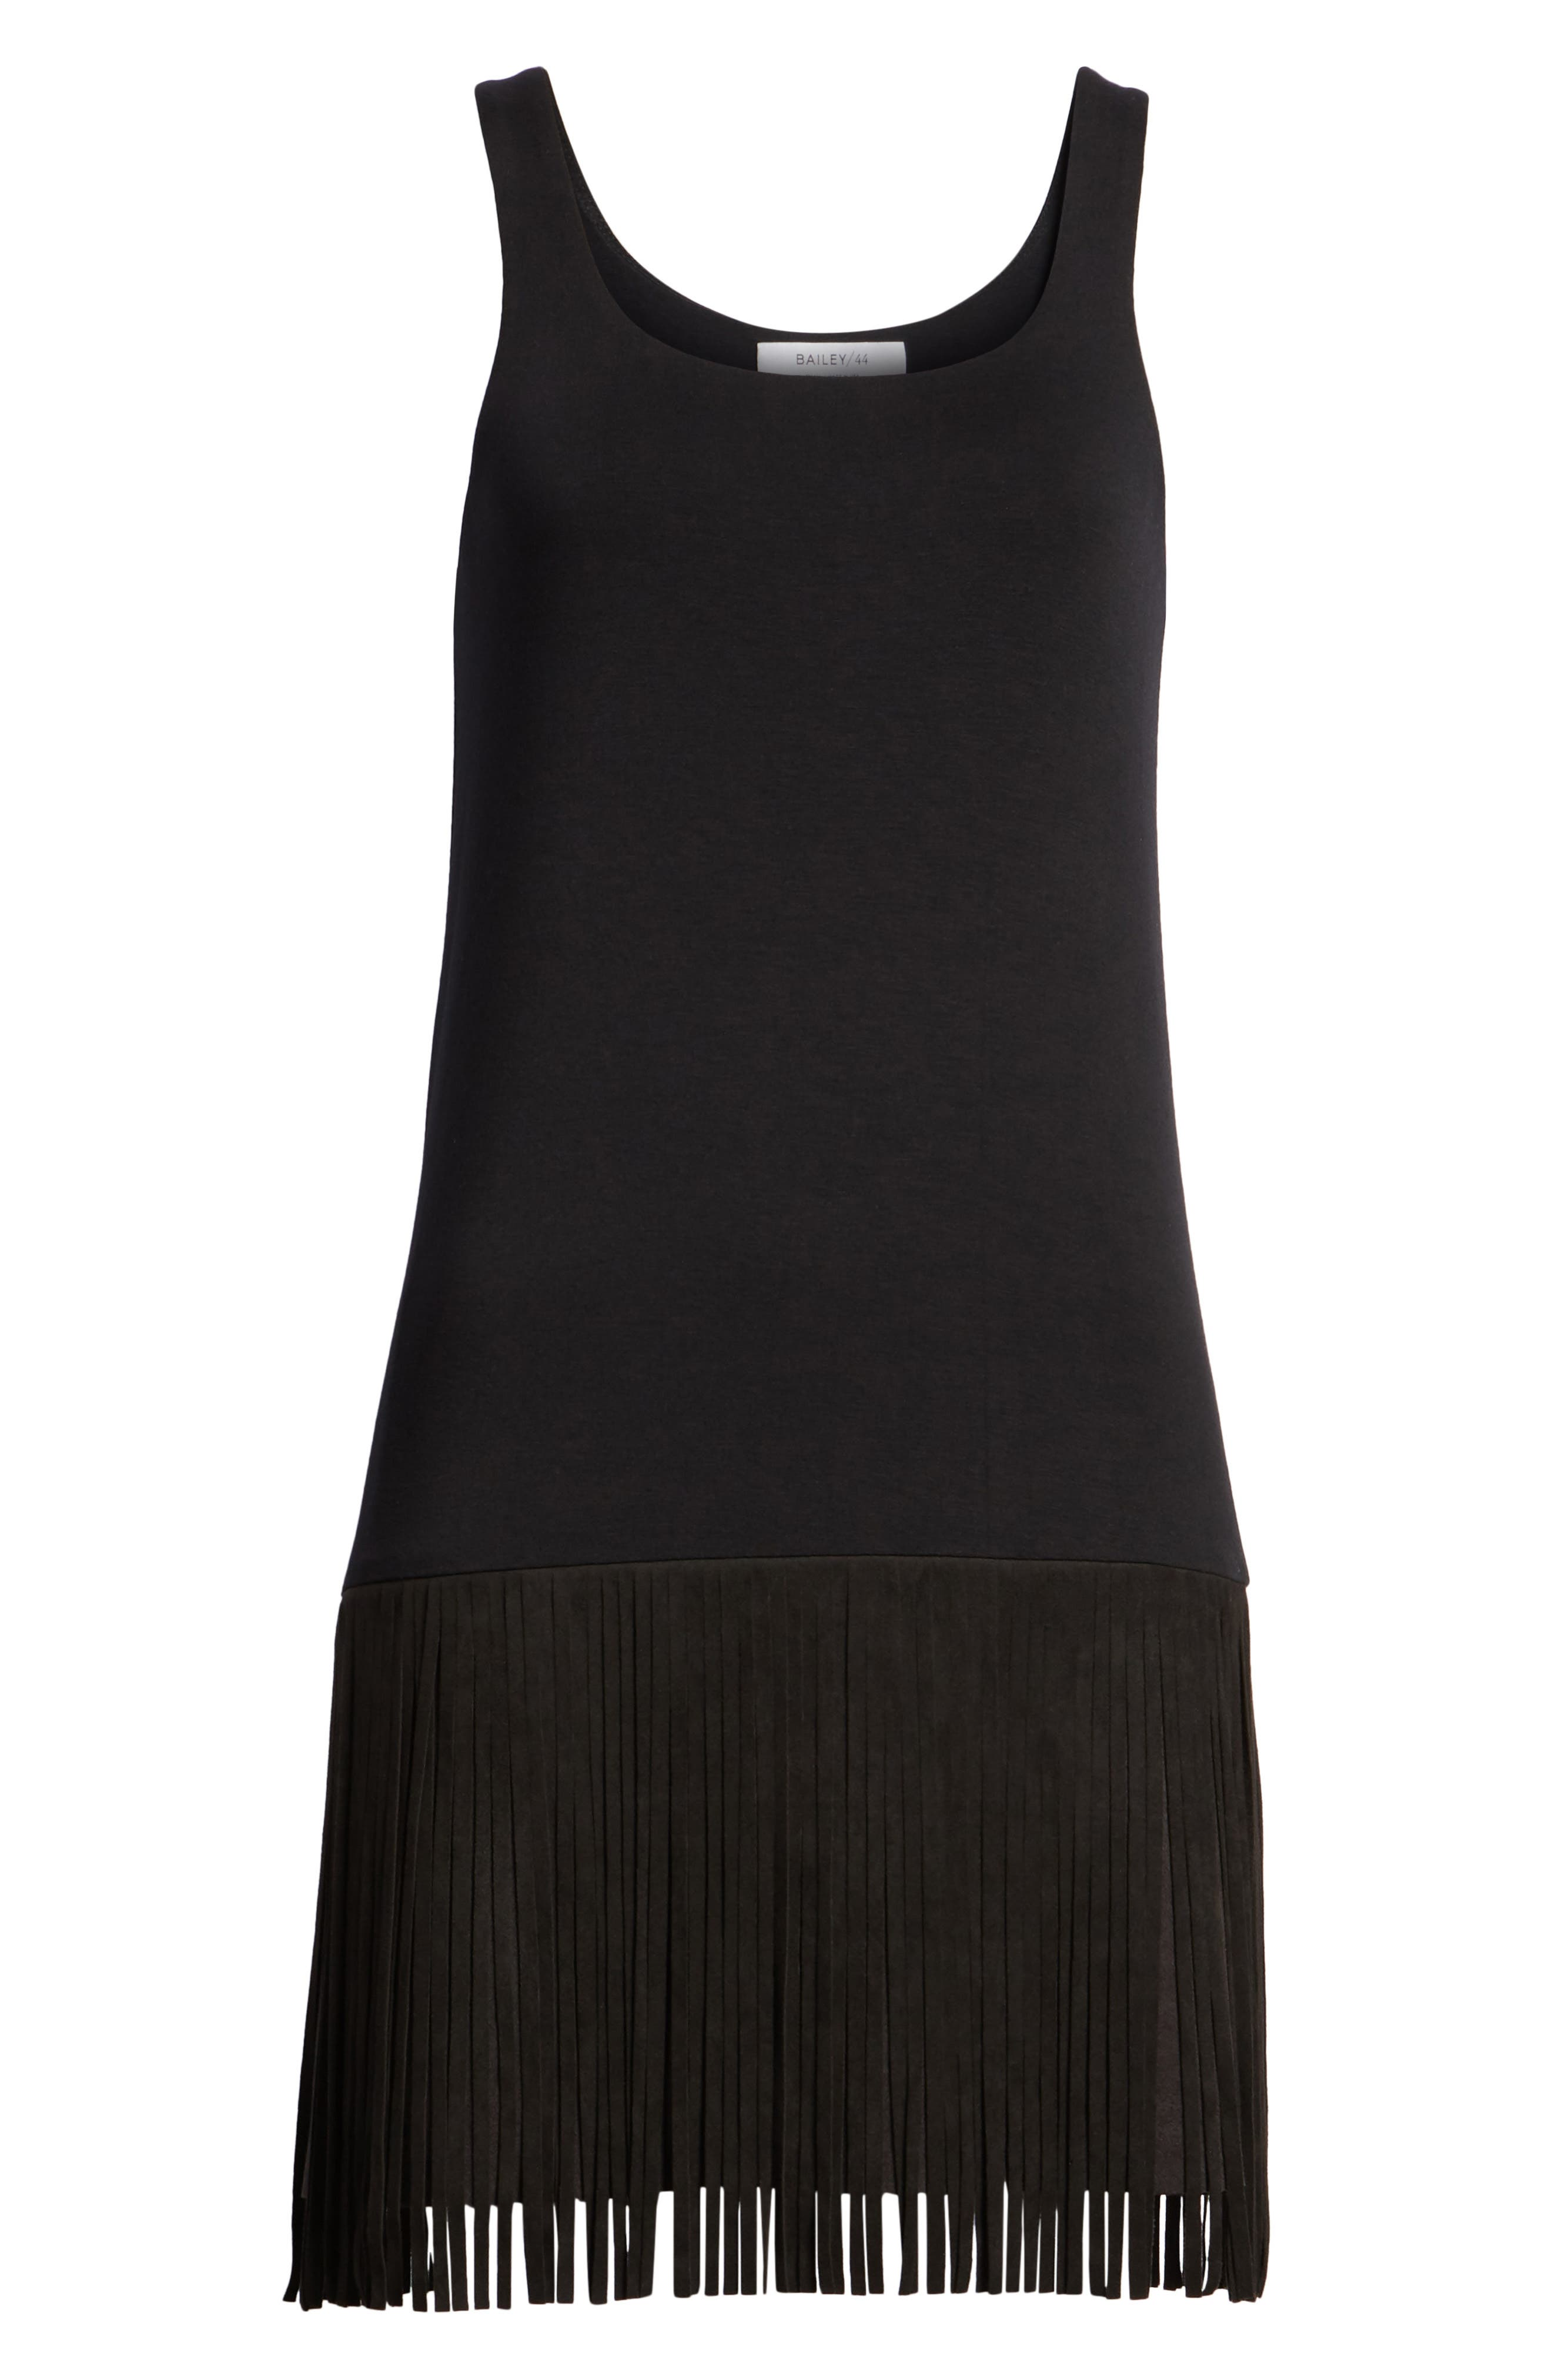 Dead or Alive Fringe Tank Dress,                             Alternate thumbnail 7, color,                             Black